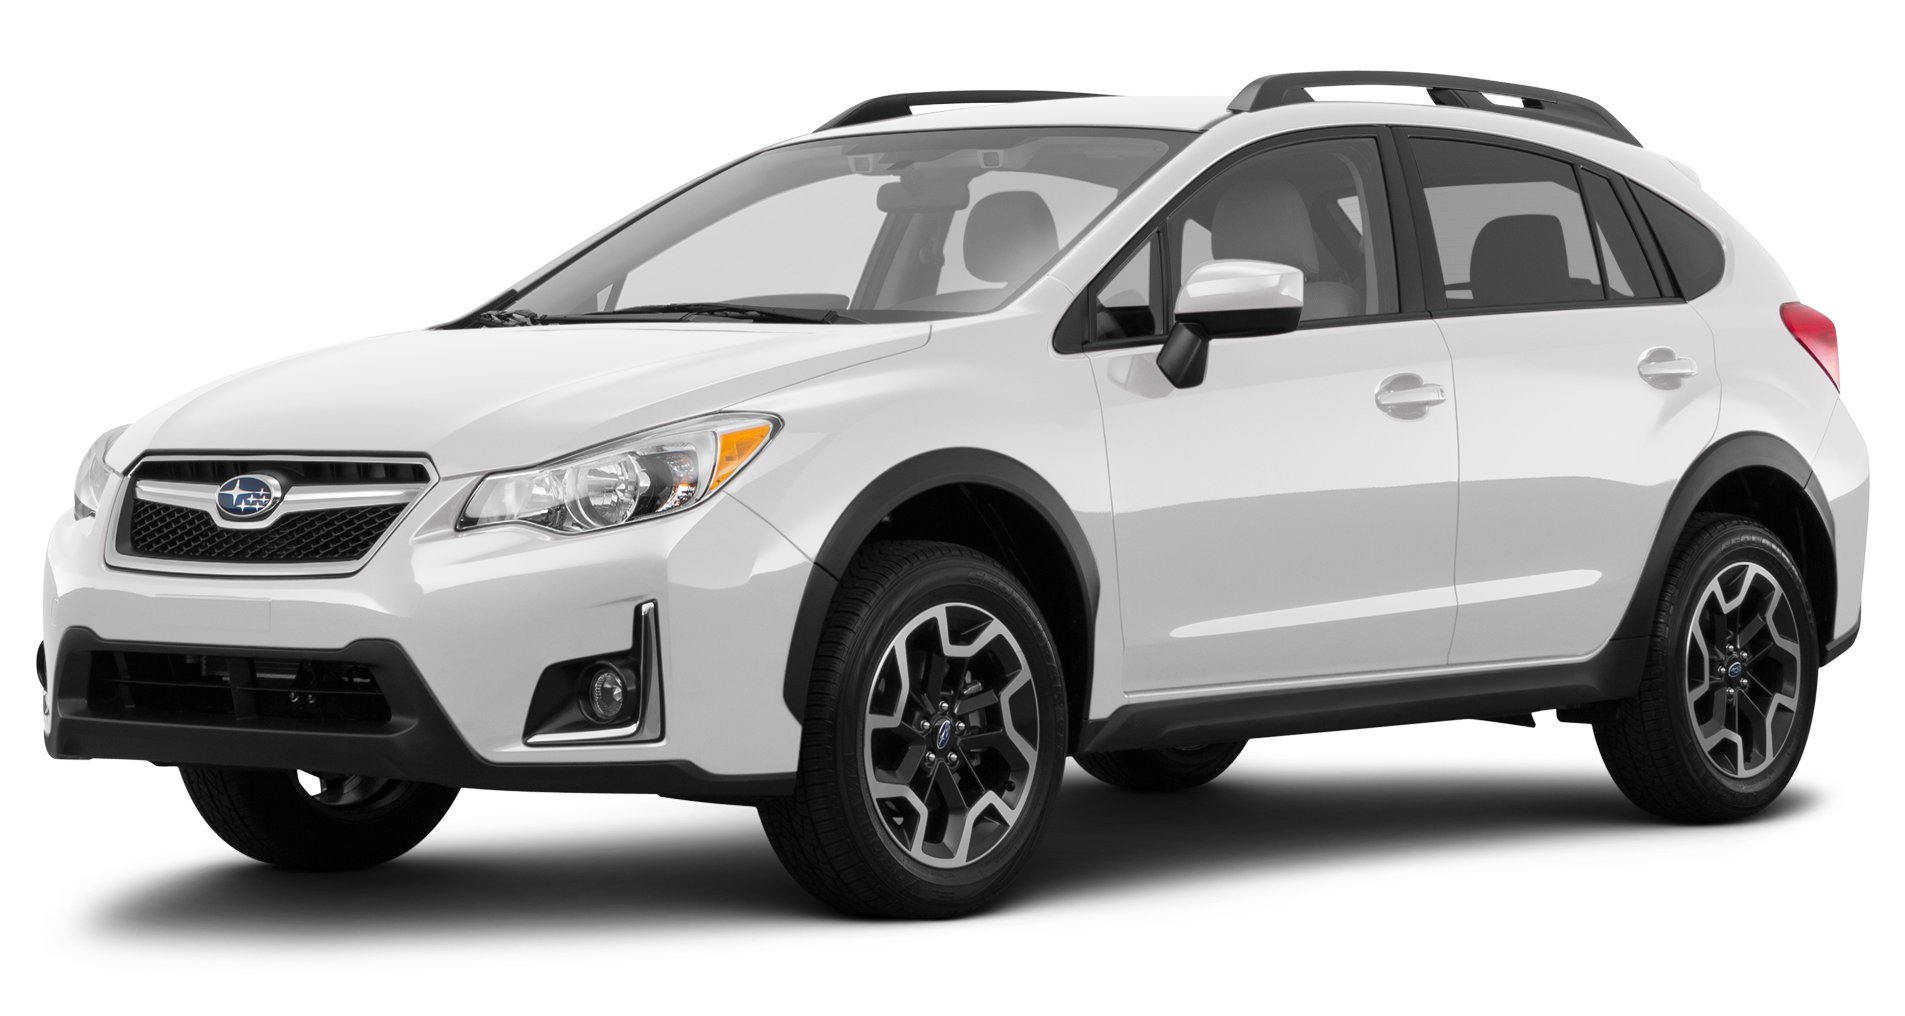 2017 subaru forester reviews images and specs vehicles. Black Bedroom Furniture Sets. Home Design Ideas